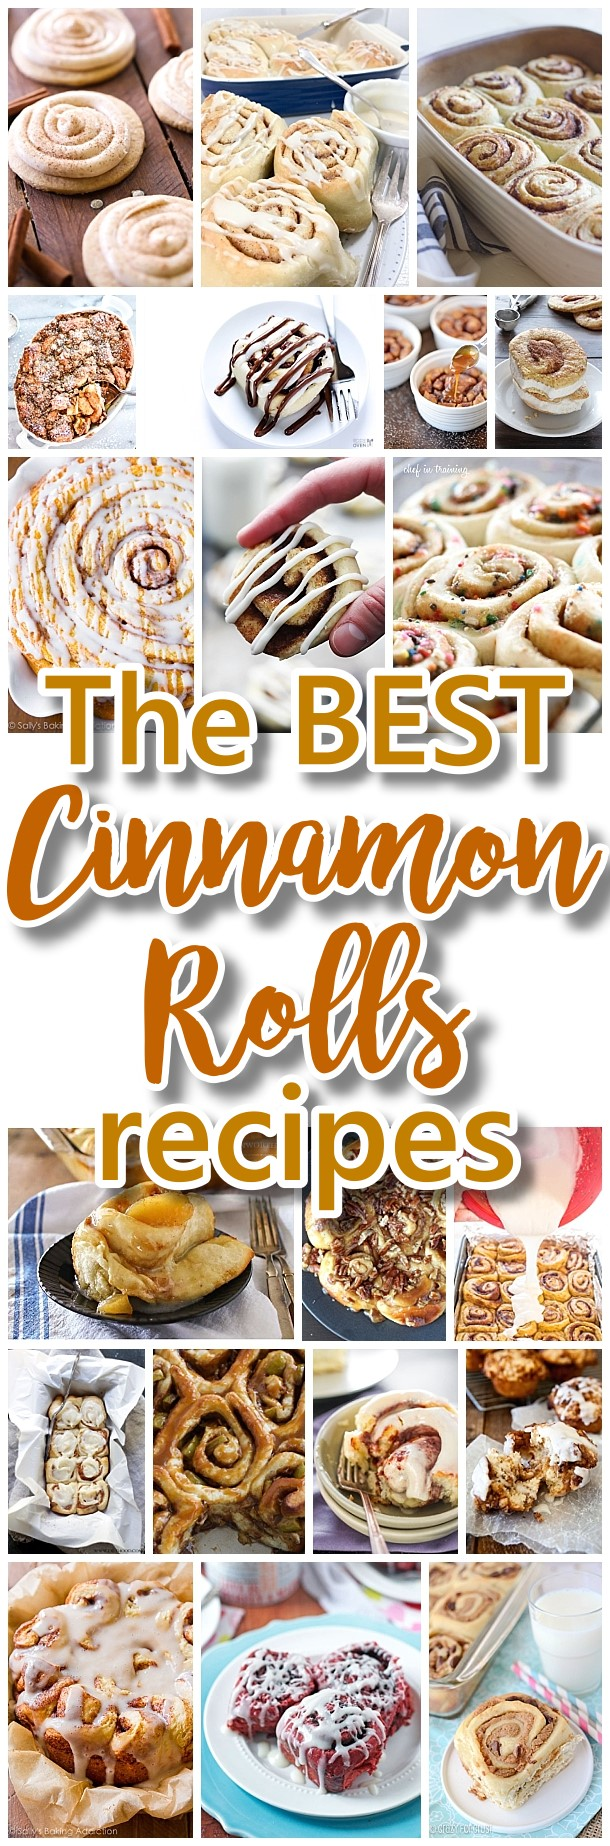 The BEST Cinnamon Rolls Recipes - The Perfect Treats Recipes for Breakfast, Brunch, Birthday Celebrations, Desserts, Christmas Morning, Special Occasions and Holidays #cinnamonrolls #christmasbreakfast #cinnamon #cinnamontreats #cinnamonrollsrecipes #cinnamondesserts #breakfastrolls #sweetrolls